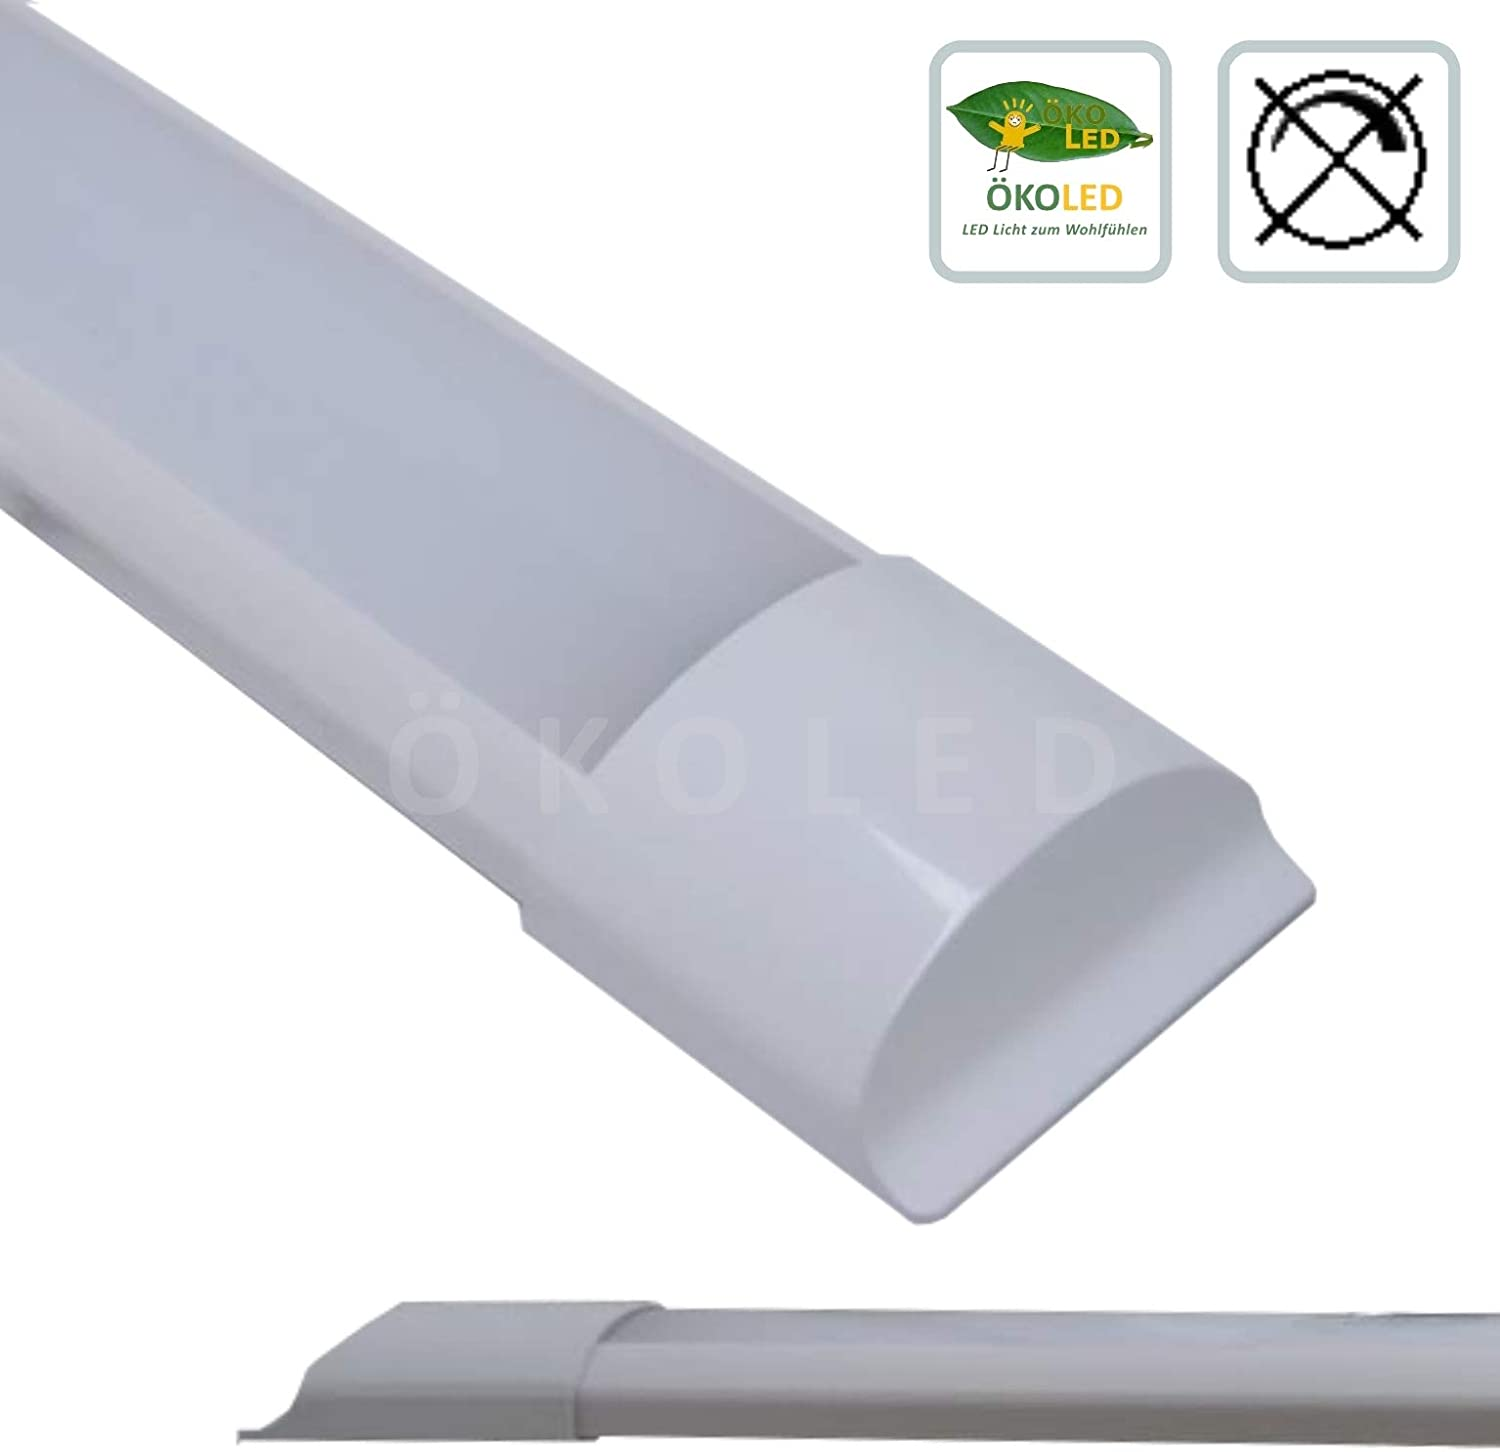 LED Lichtbalken LINE 1200mm 4000K 3480Lm